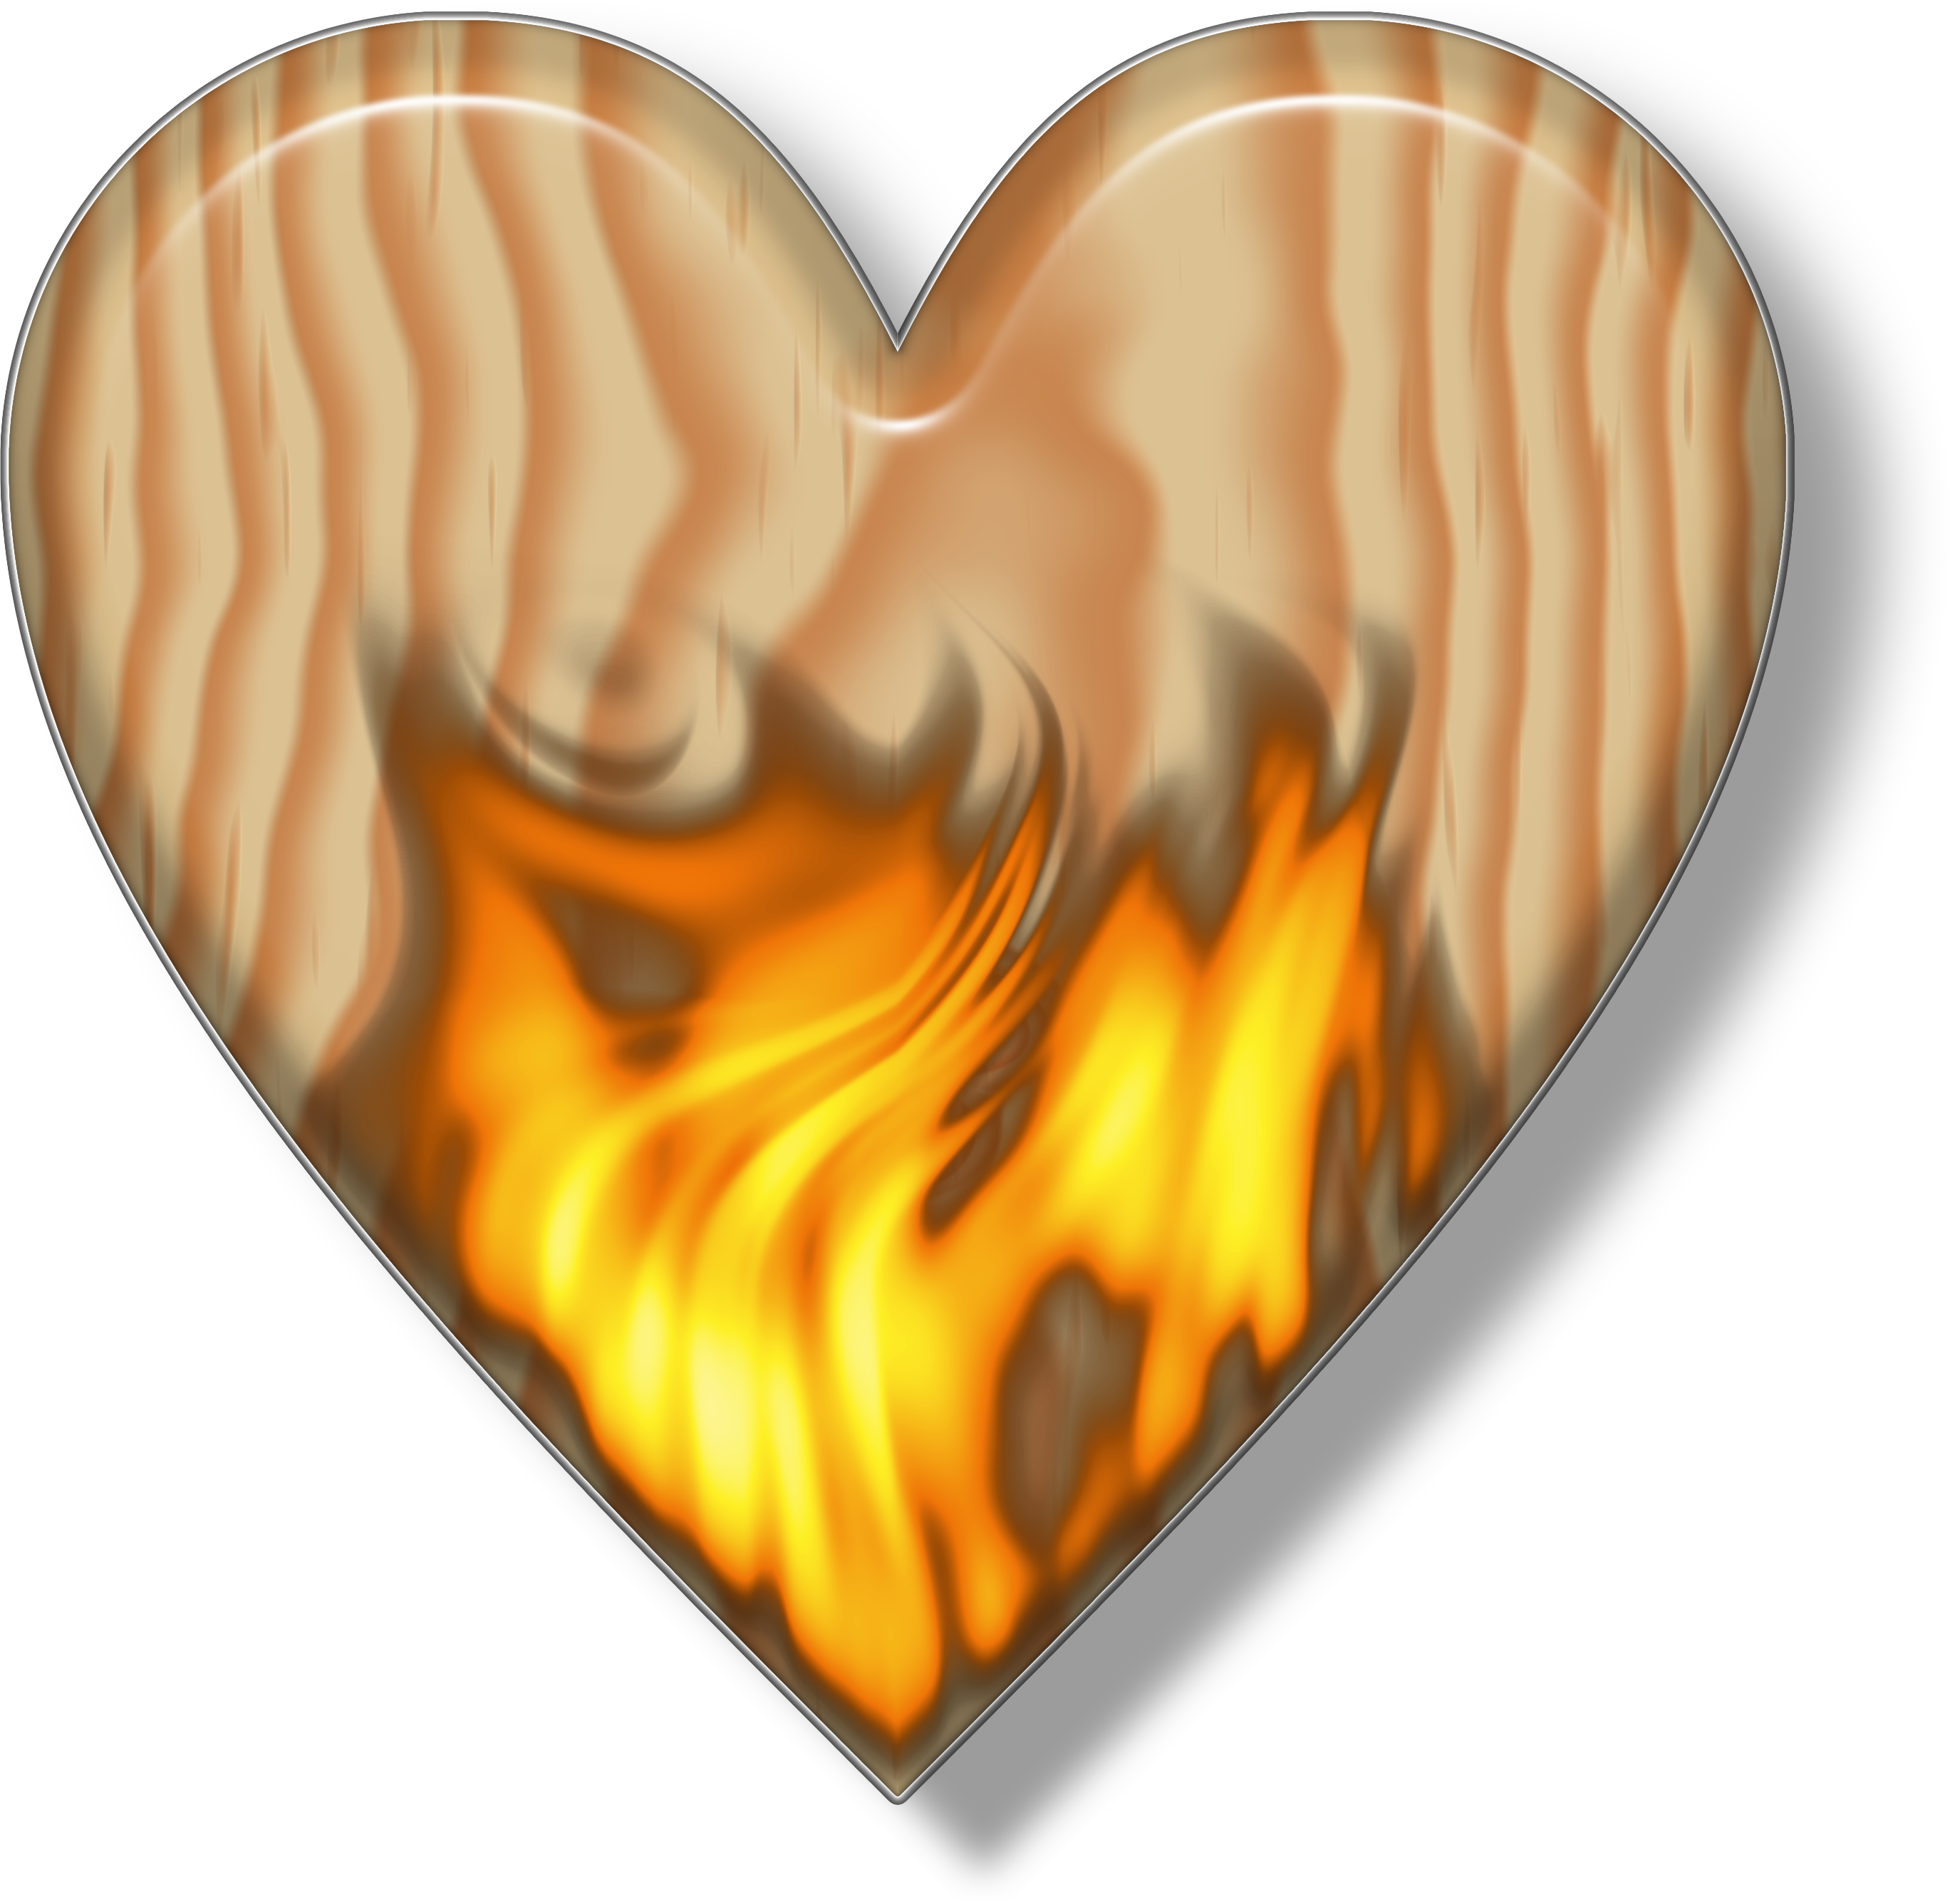 Heart clipart vector picture freeuse Wooden heart clipart - Clipground picture freeuse